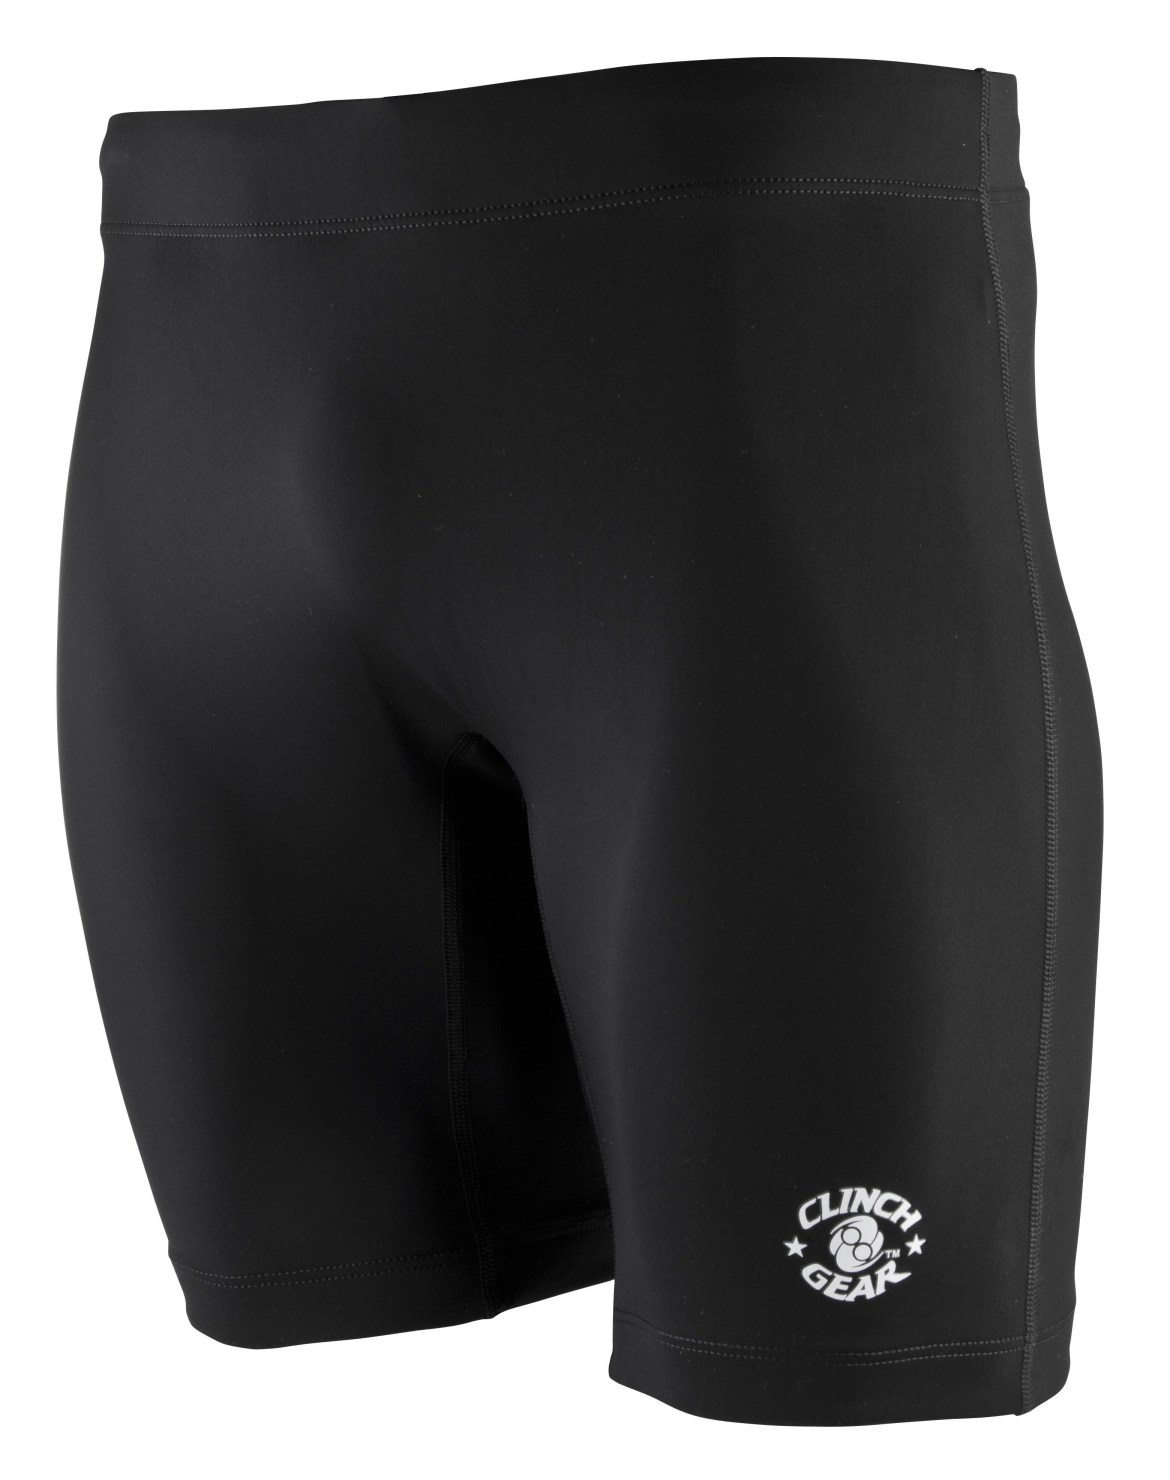 Best Football Compression Shorts Reviewed   Tested in 2019 9a60eba5b